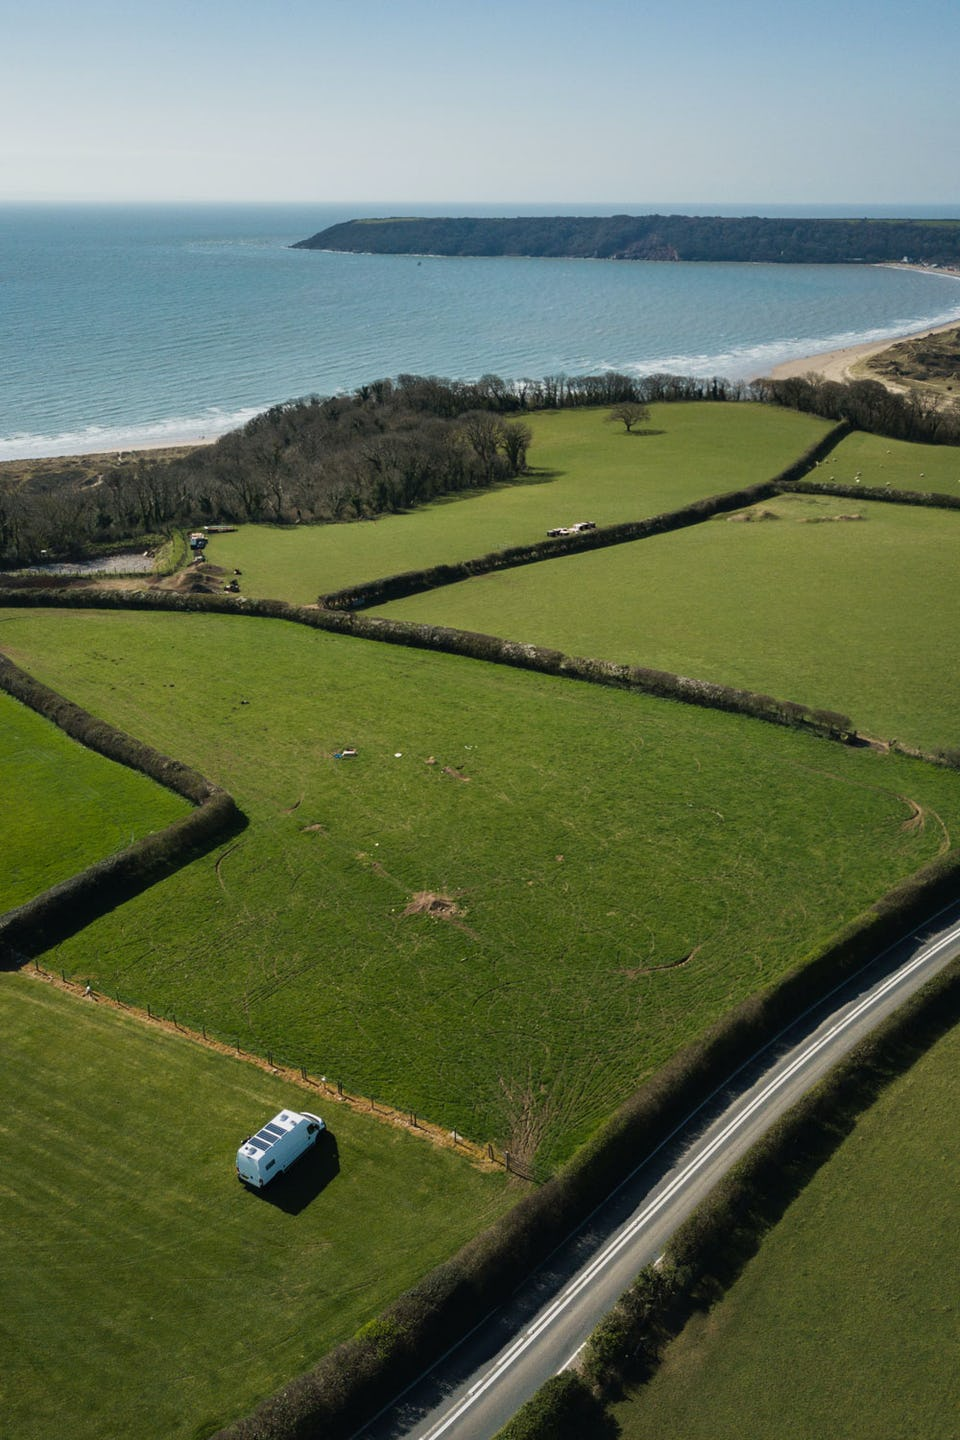 A CL site in the Gower